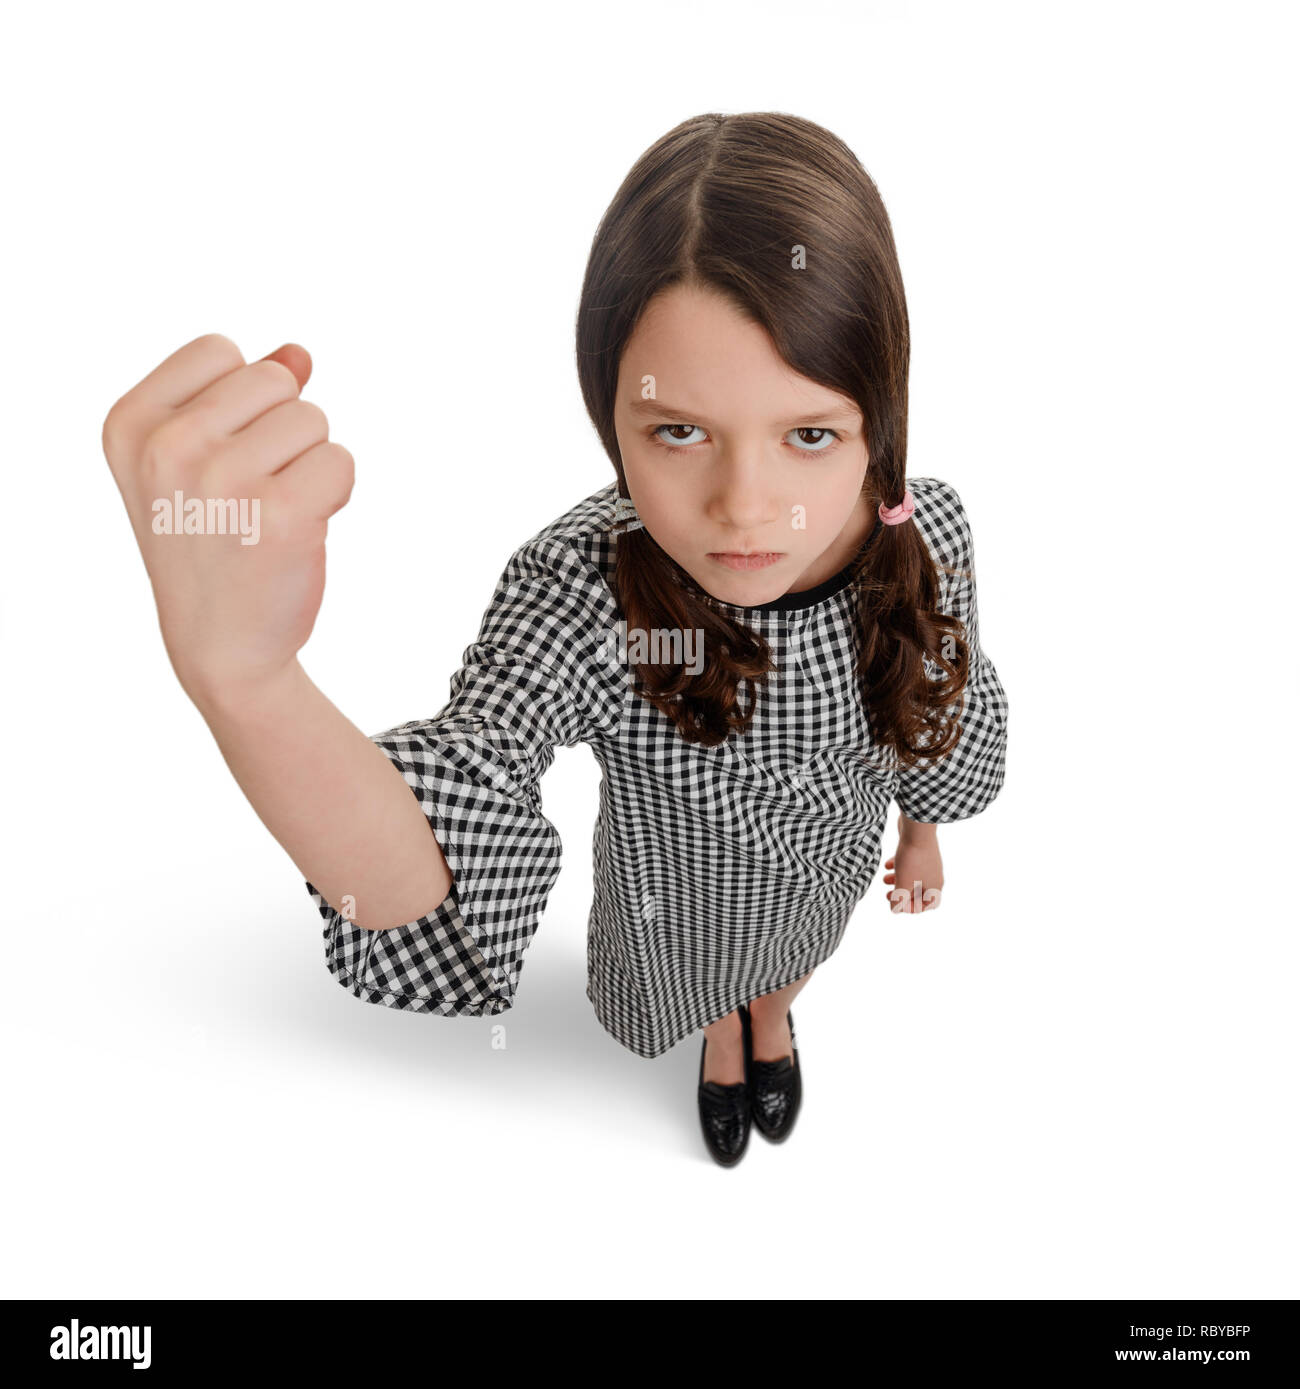 Angry Kid Fist Stock Photos & Angry Kid Fist Stock Images - Alamy